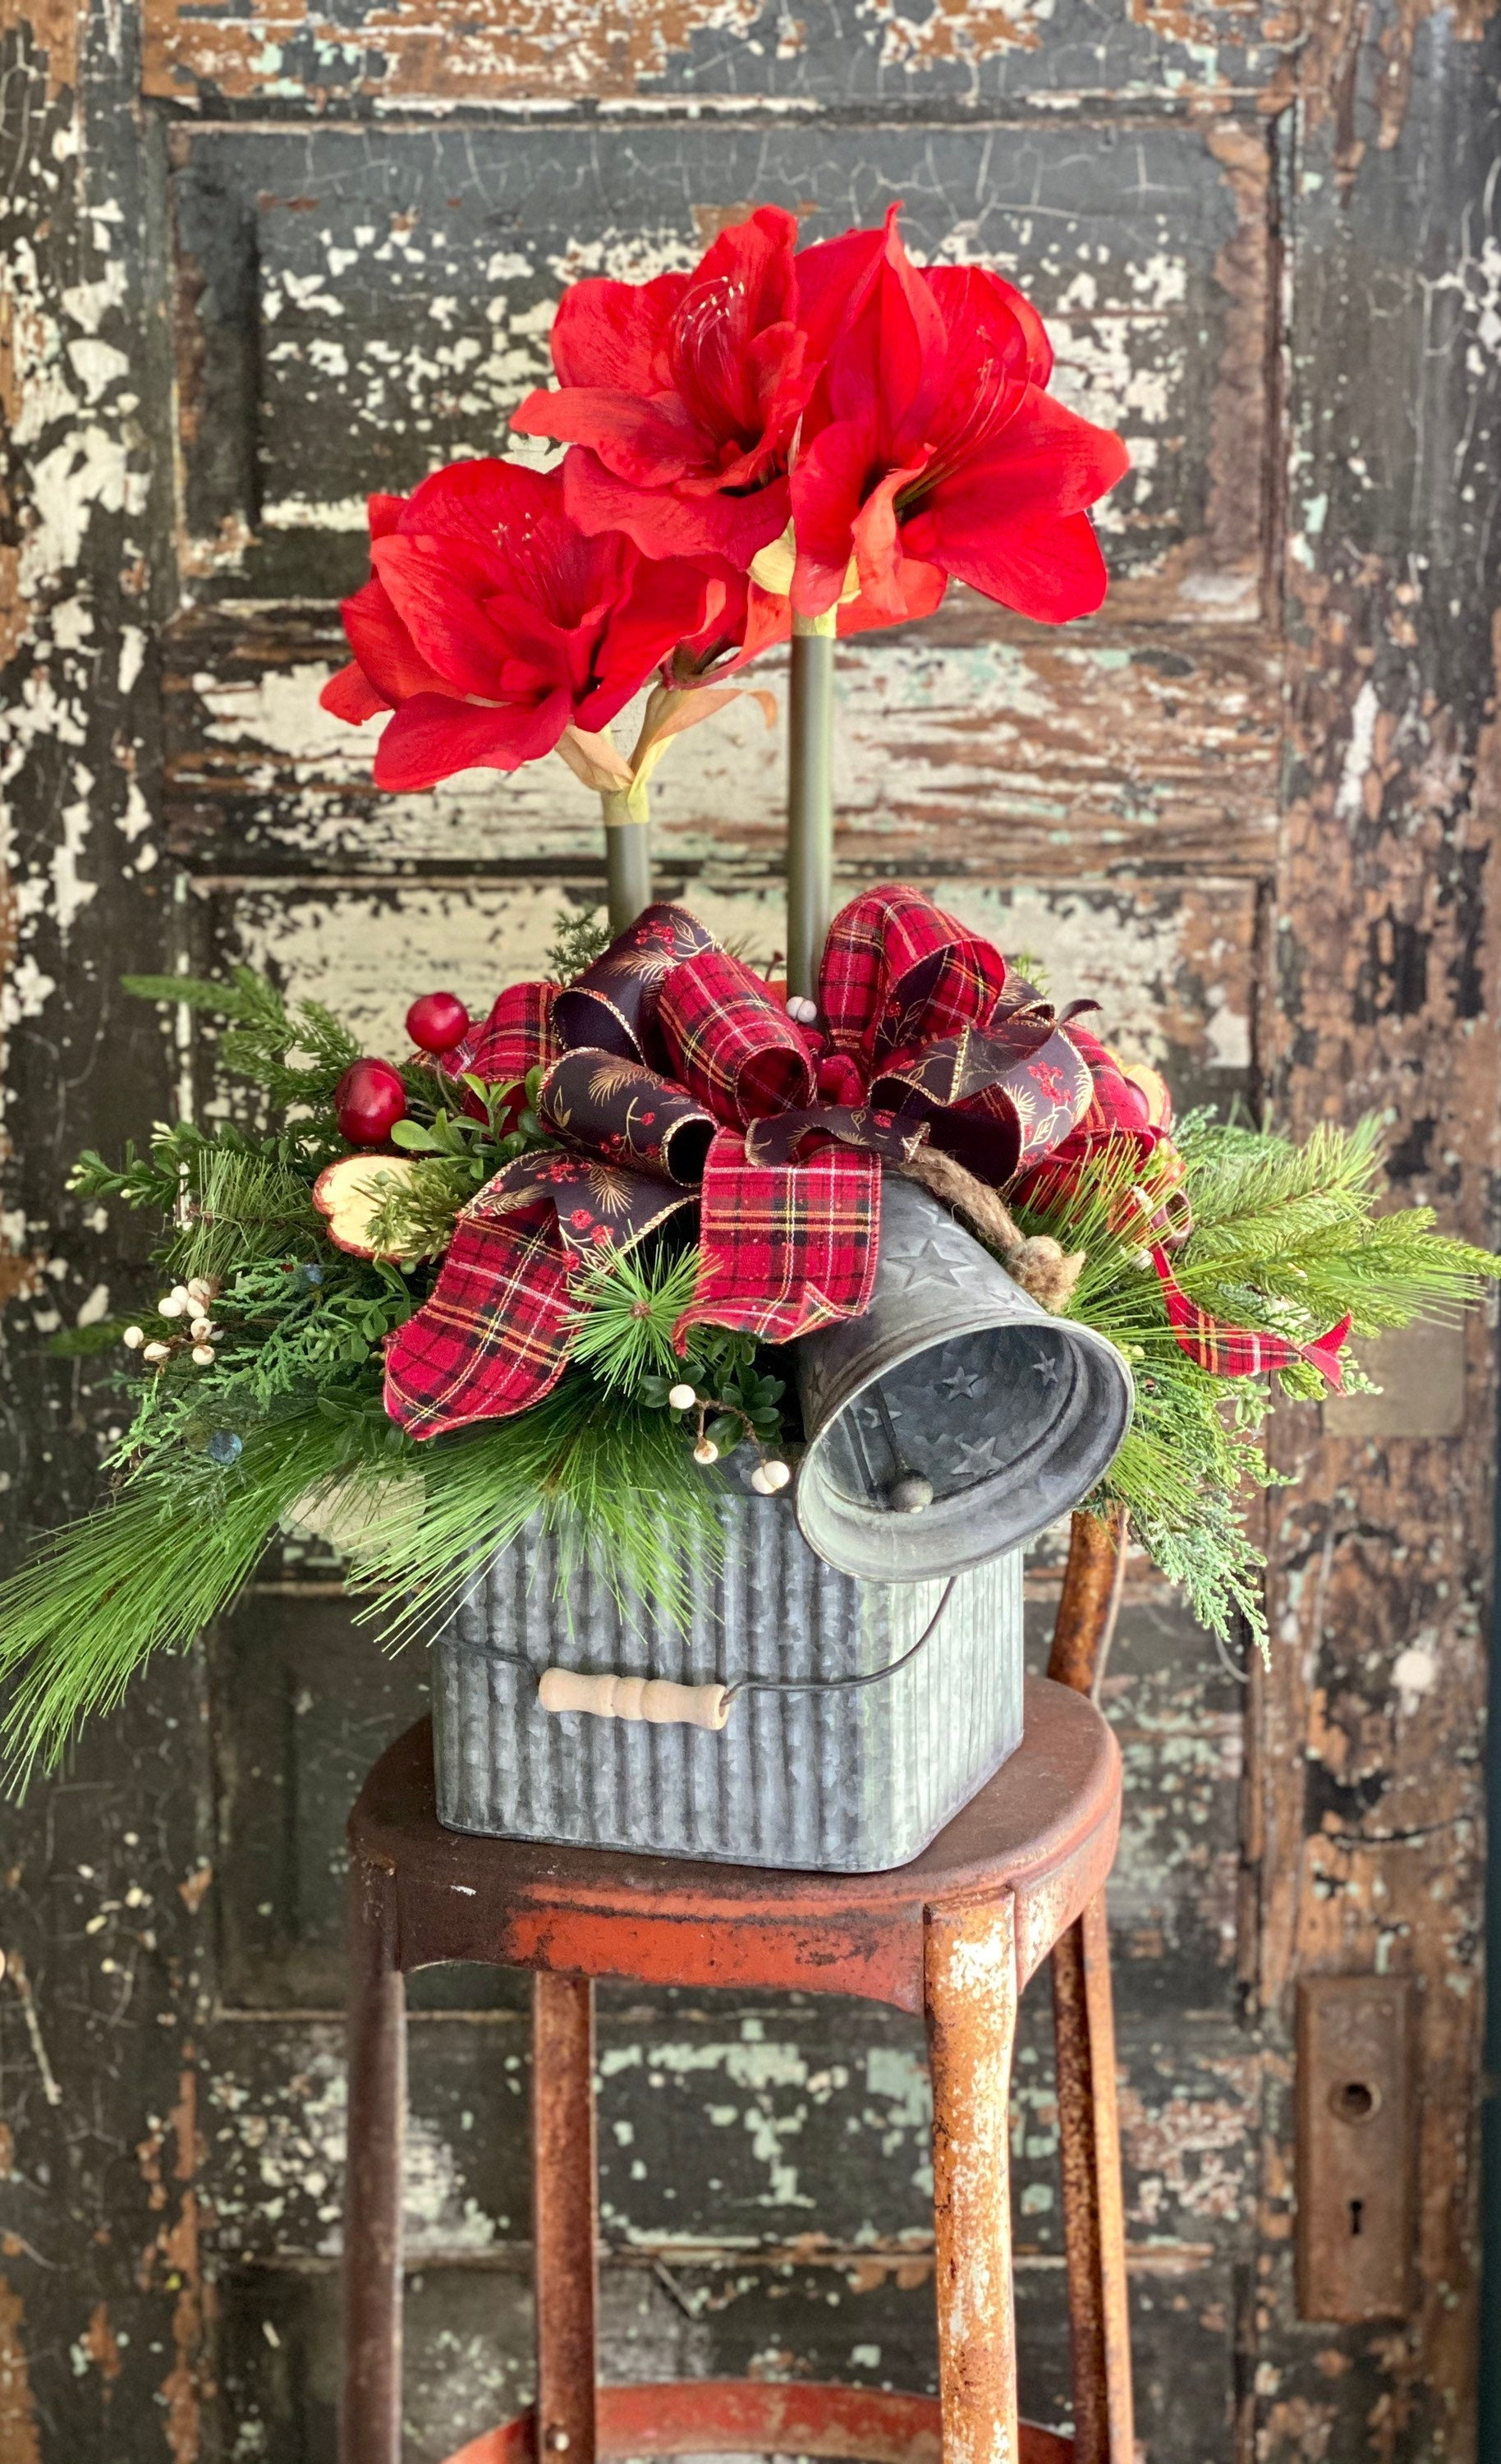 The Samar Red Amaryllis & Pine Christmas Centerpiece For Dining Table, winter decor, gift for her, holiday decor, christmas pine